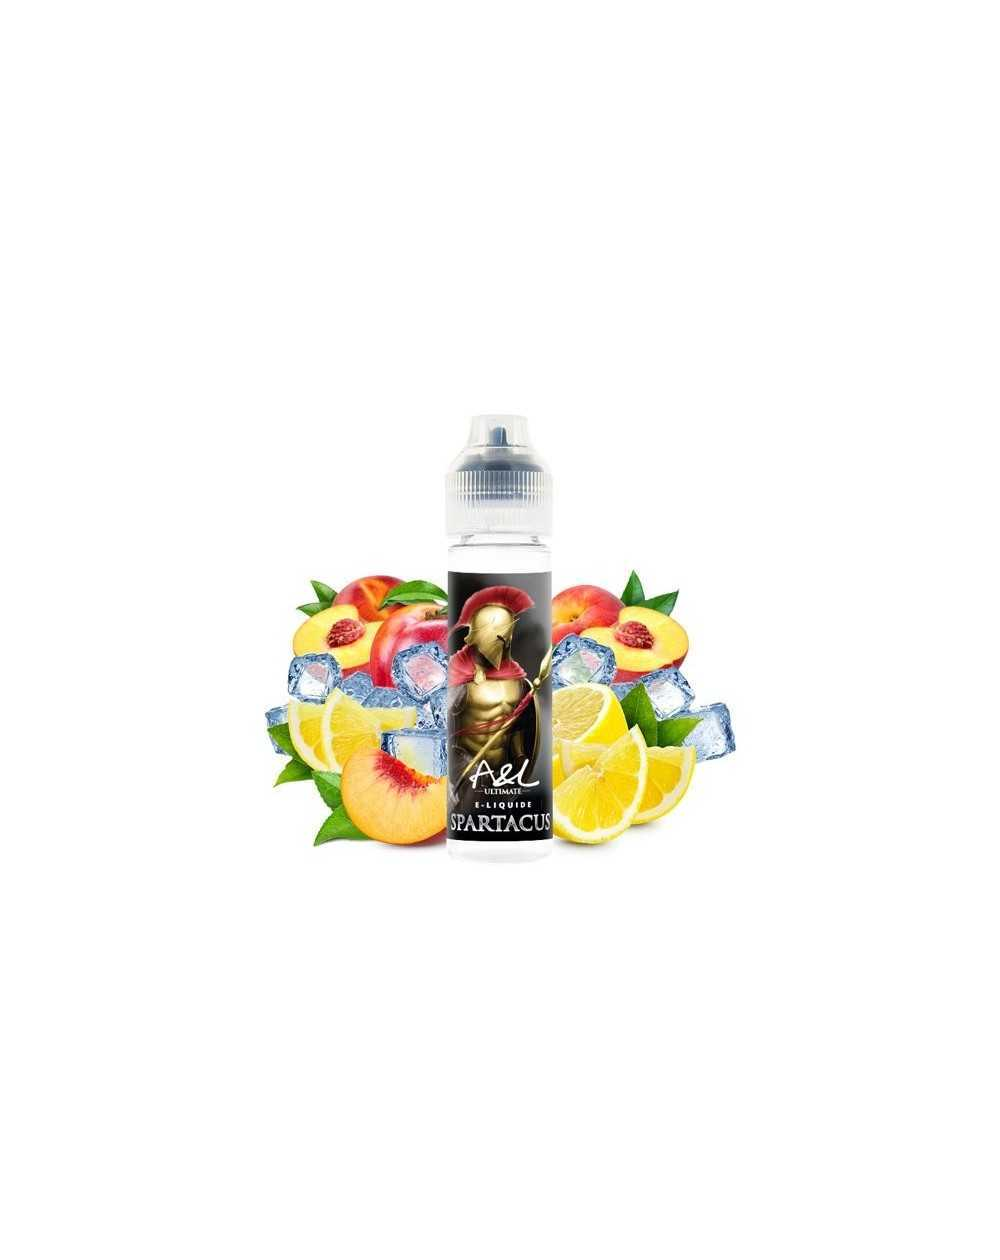 Eliquid Spartacus 50ml - Ultimate by A&L-1